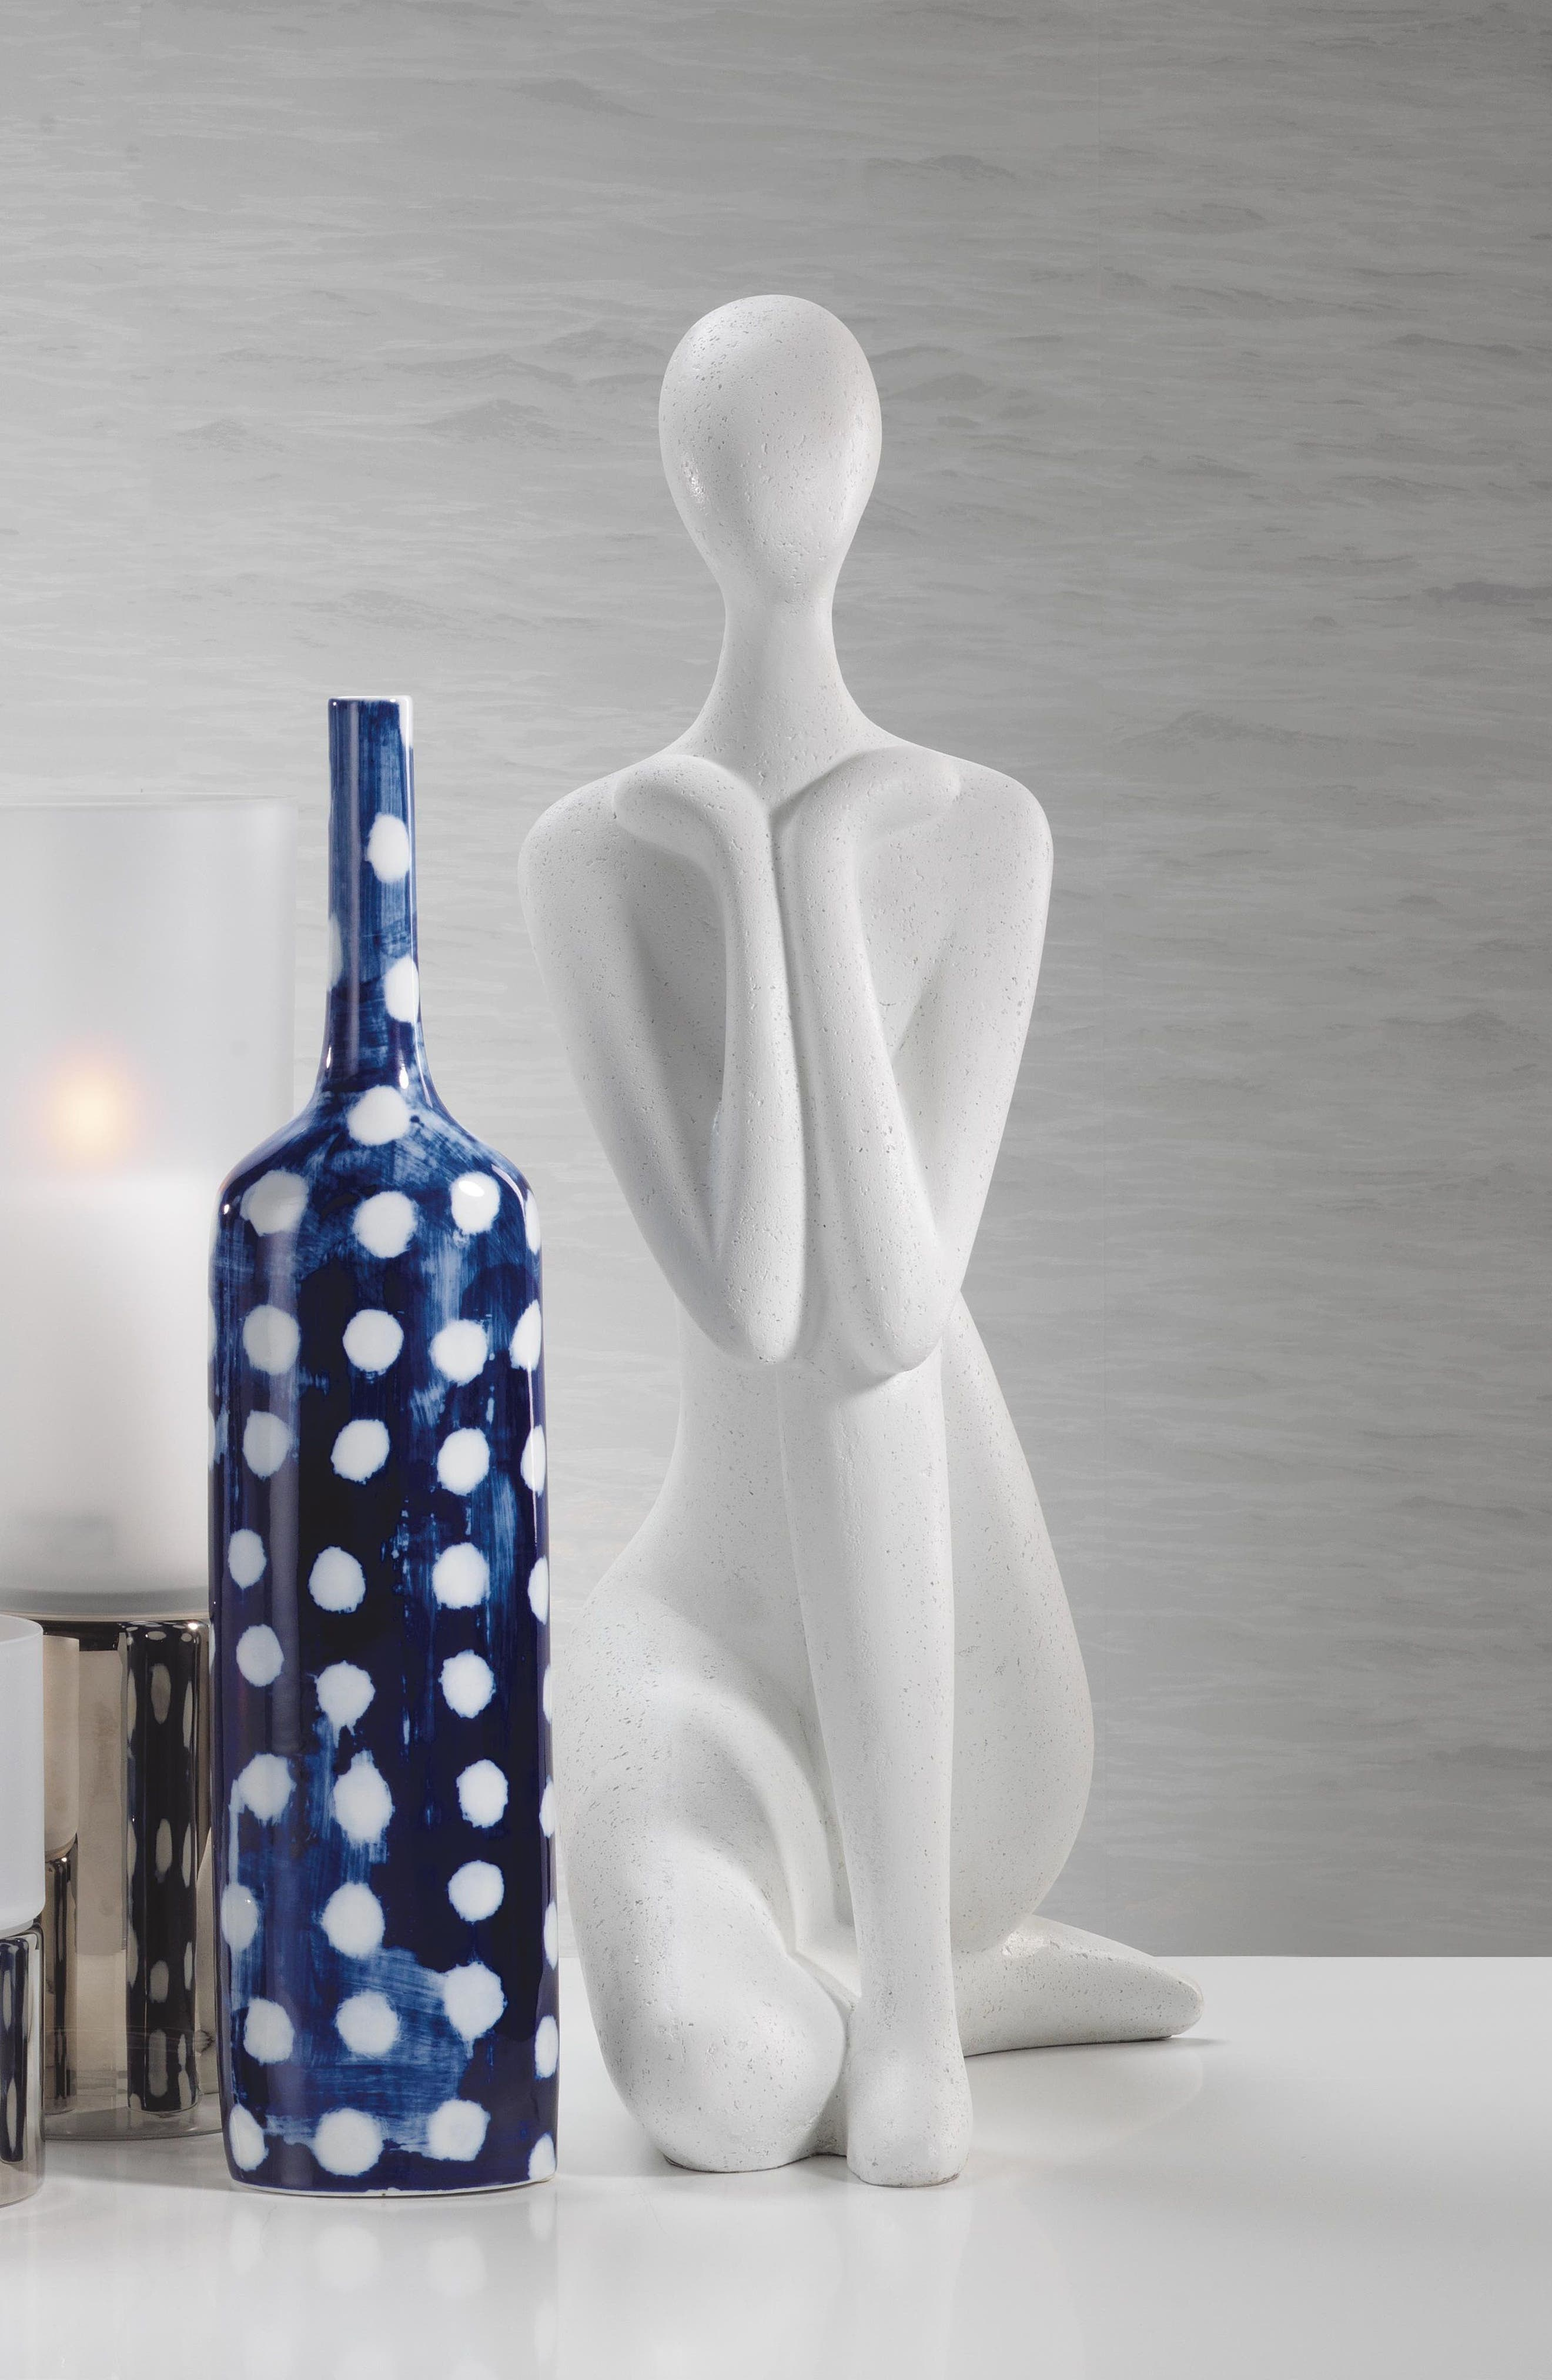 Yahto Decorative Ceramic Bottle,                             Alternate thumbnail 2, color,                             400